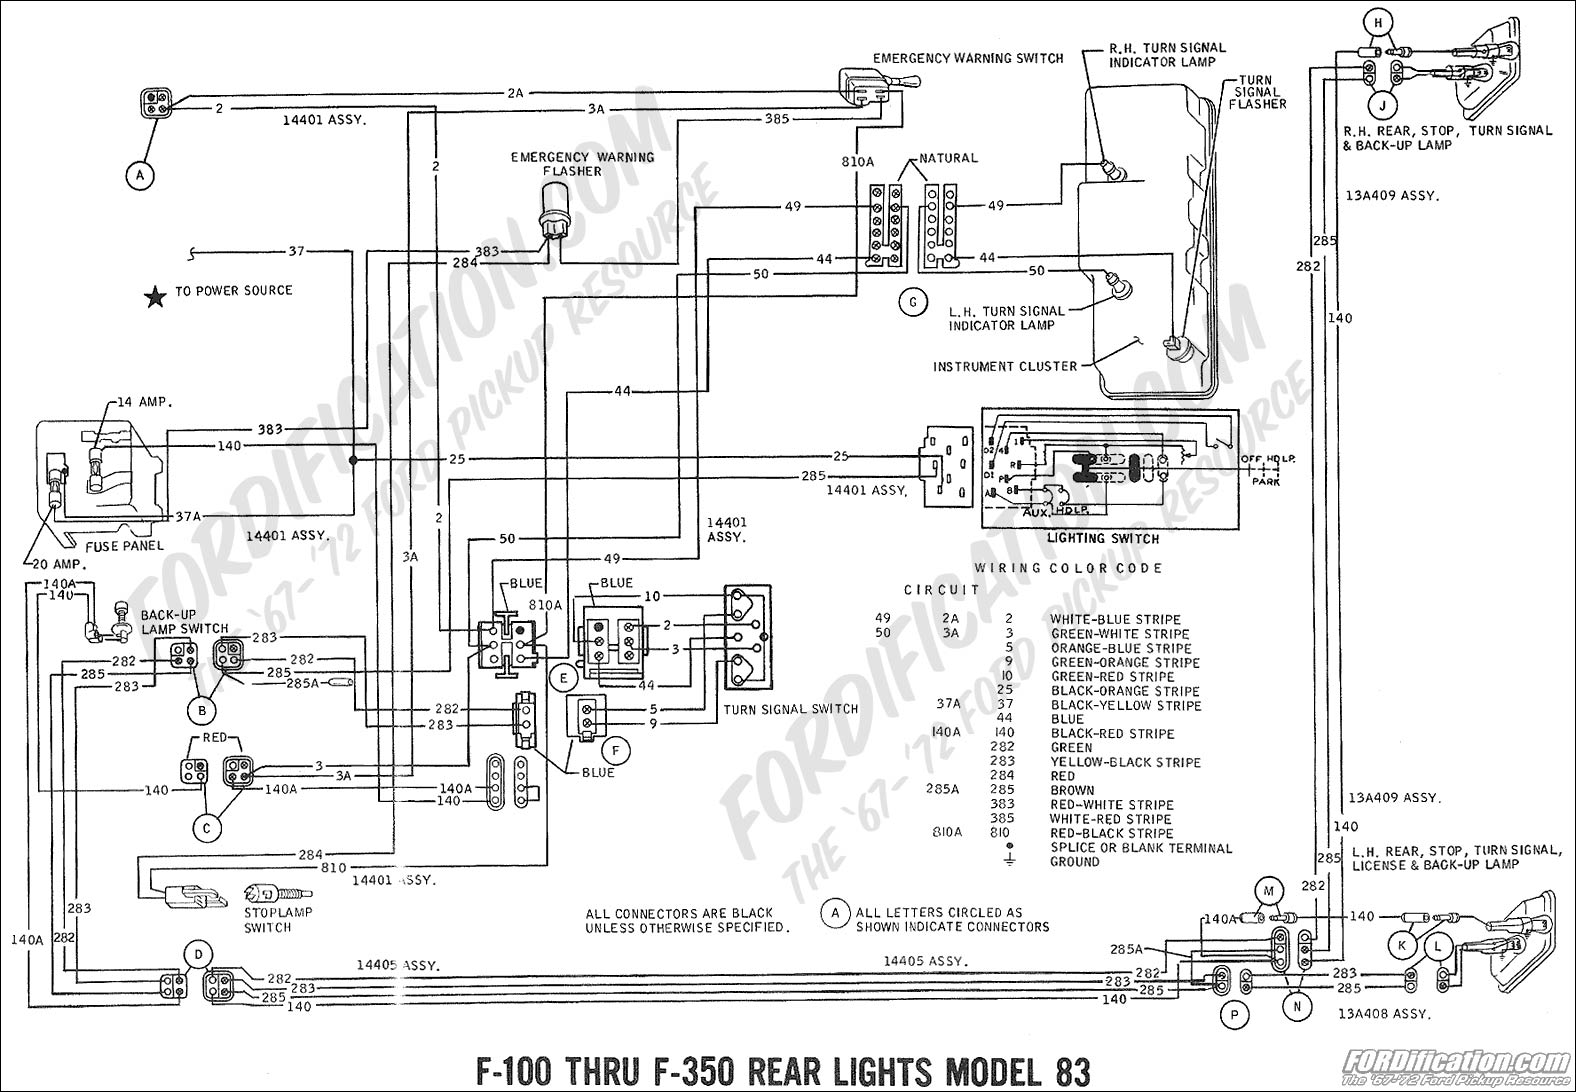 1969 ford f250 wiring diagram wiring diagram data schema 1969 Ford Custom 500 Wiring Diagram ford f 350 wiring diagram for 69 wiring diagram blog data 1969 ford galaxie wiring diagram 1969 ford f250 wiring diagram